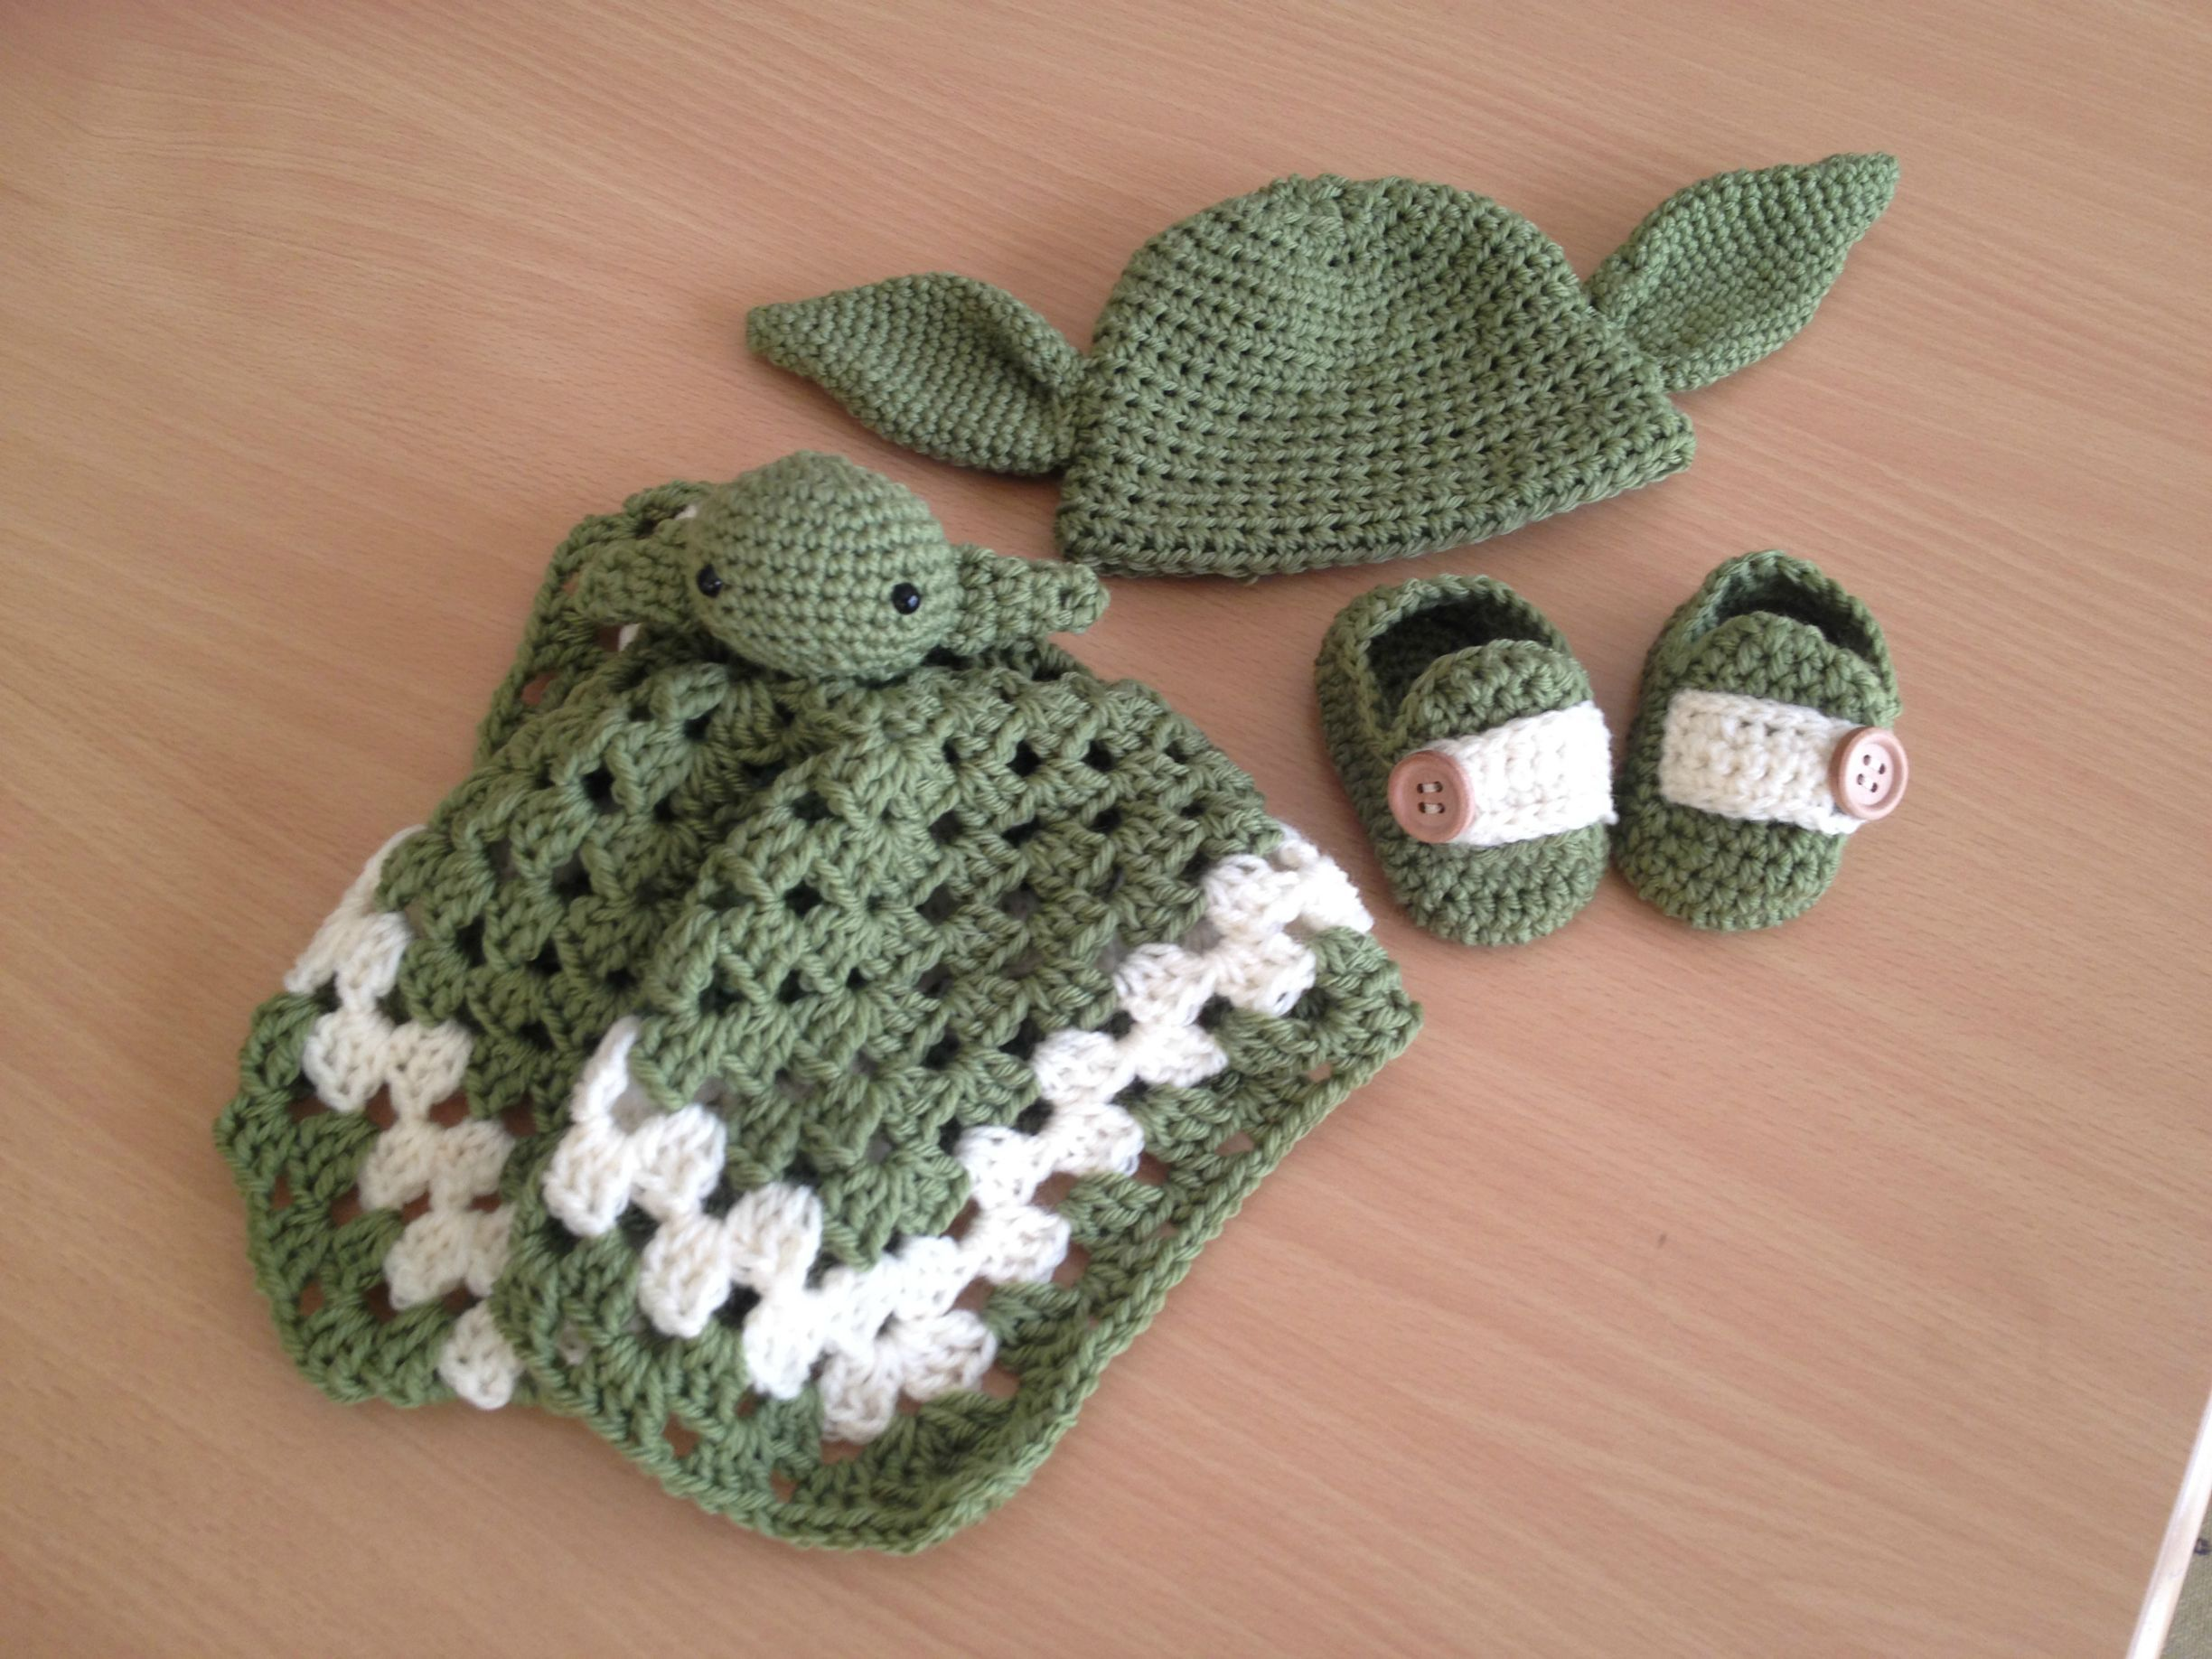 Babys first crocheted yoda outfit fashion crochet crochet babys first crocheted yoda outfit fashion bankloansurffo Images